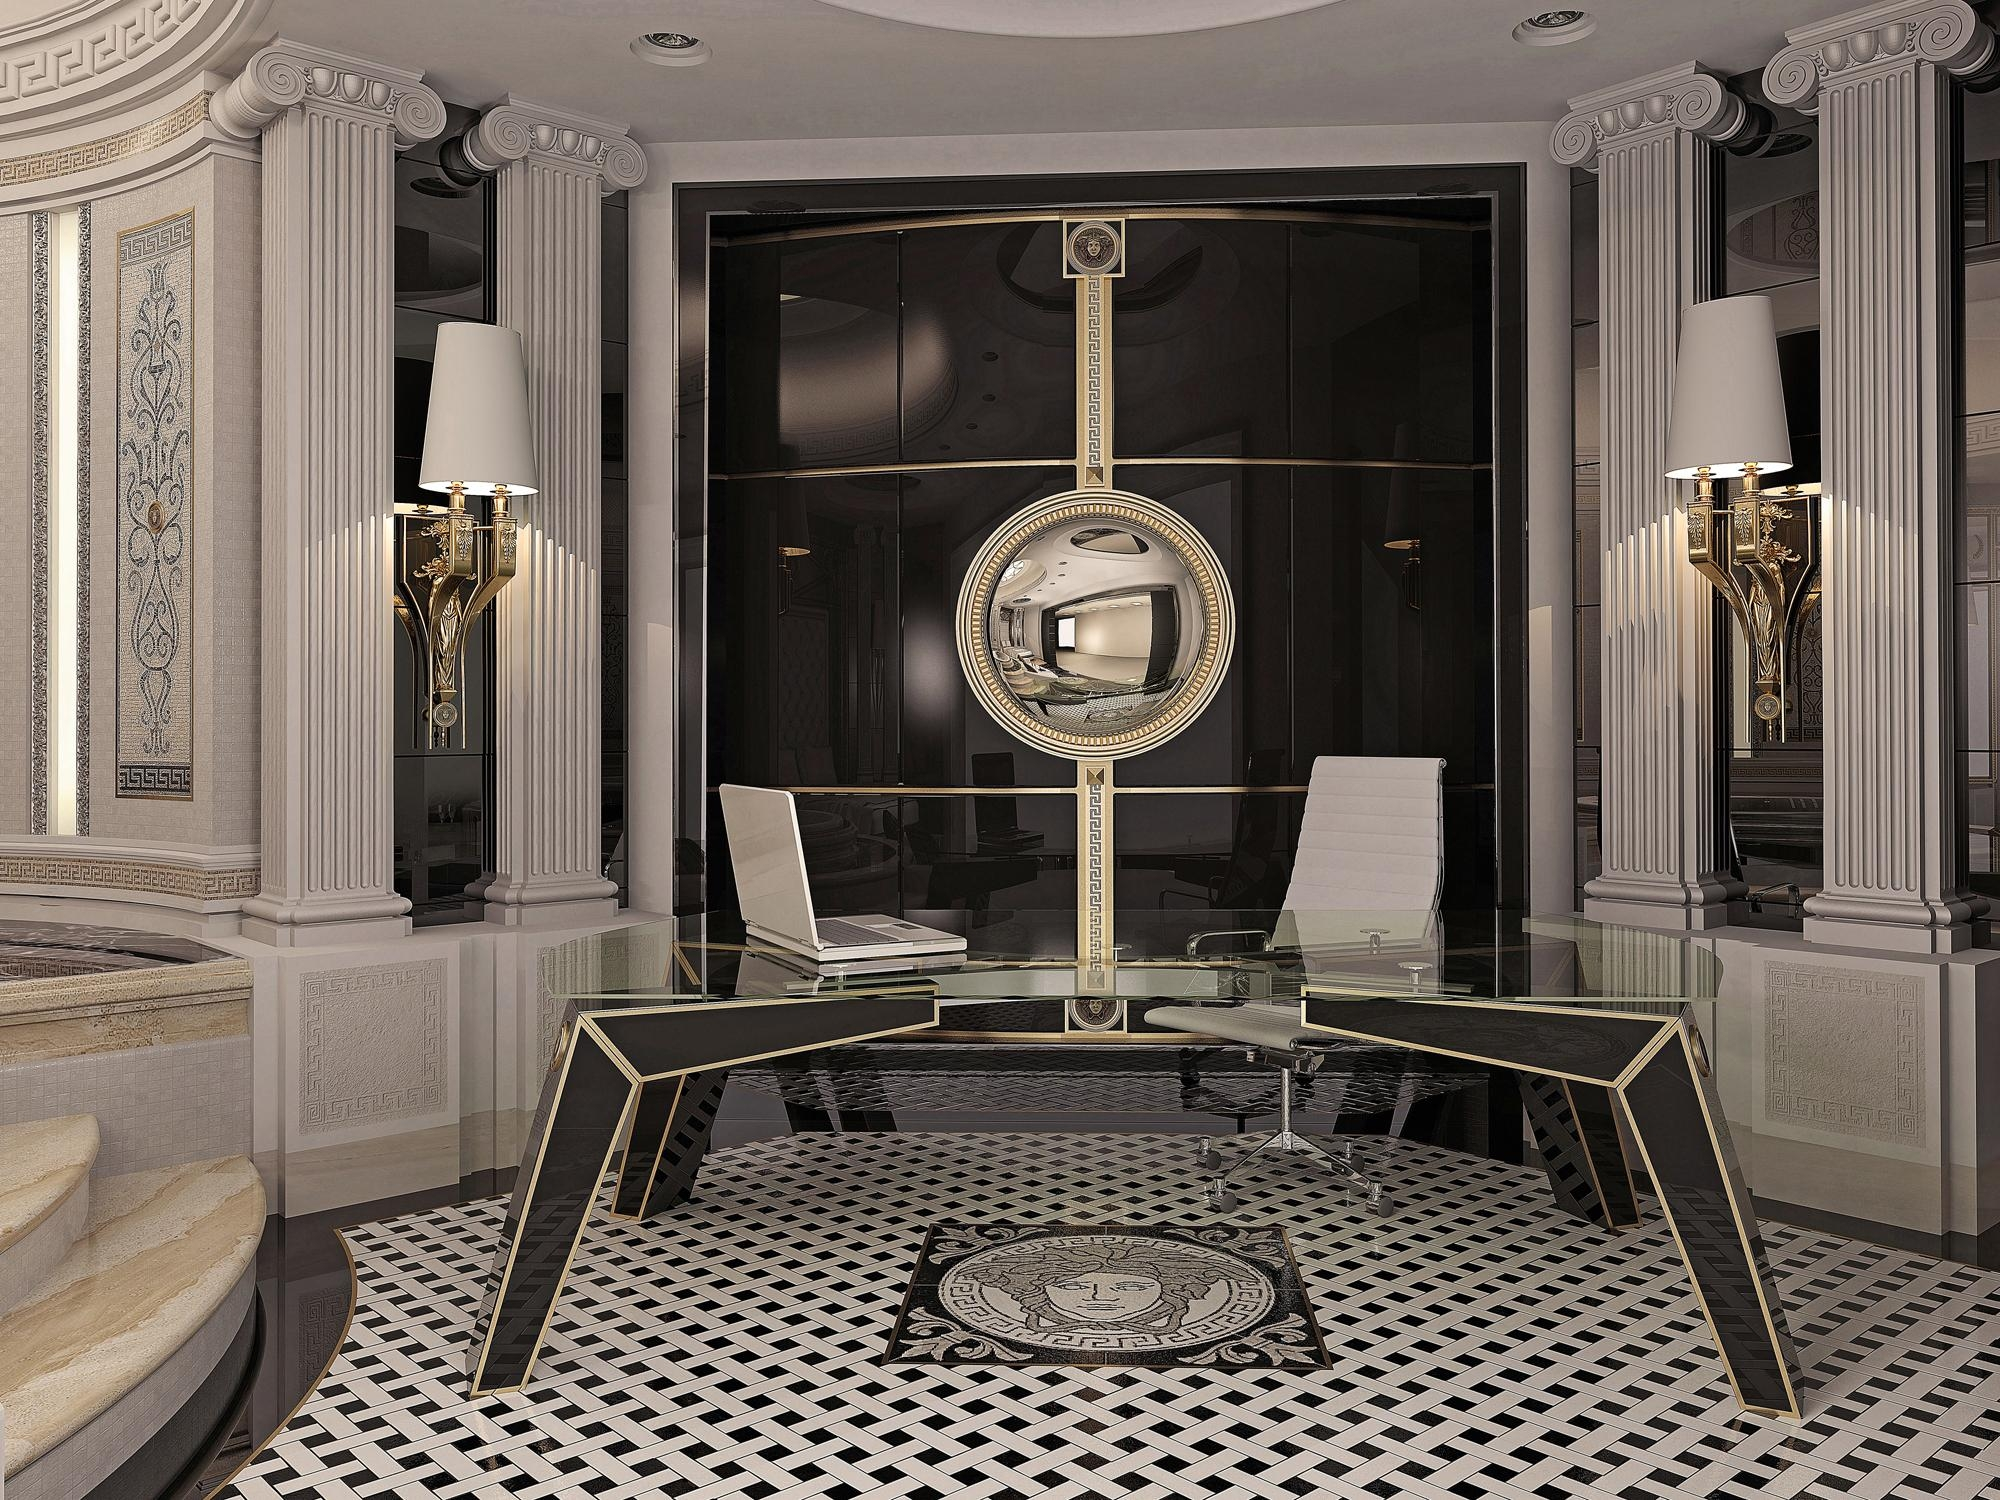 Interior And Art Files: Versace Home Within Versace Wall Art (View 17 of 20)